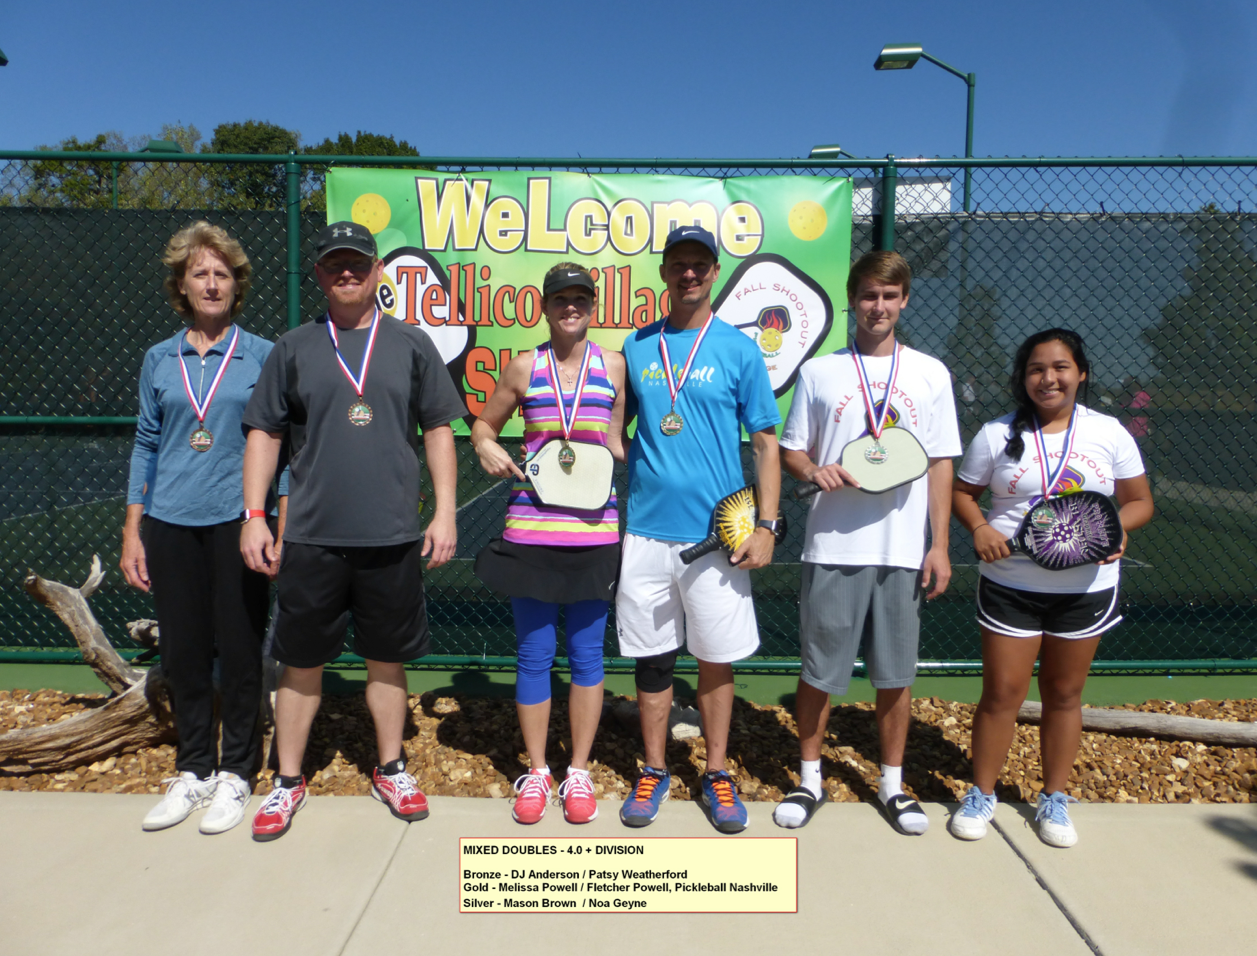 Mixed Doubles - 4.0+ Division